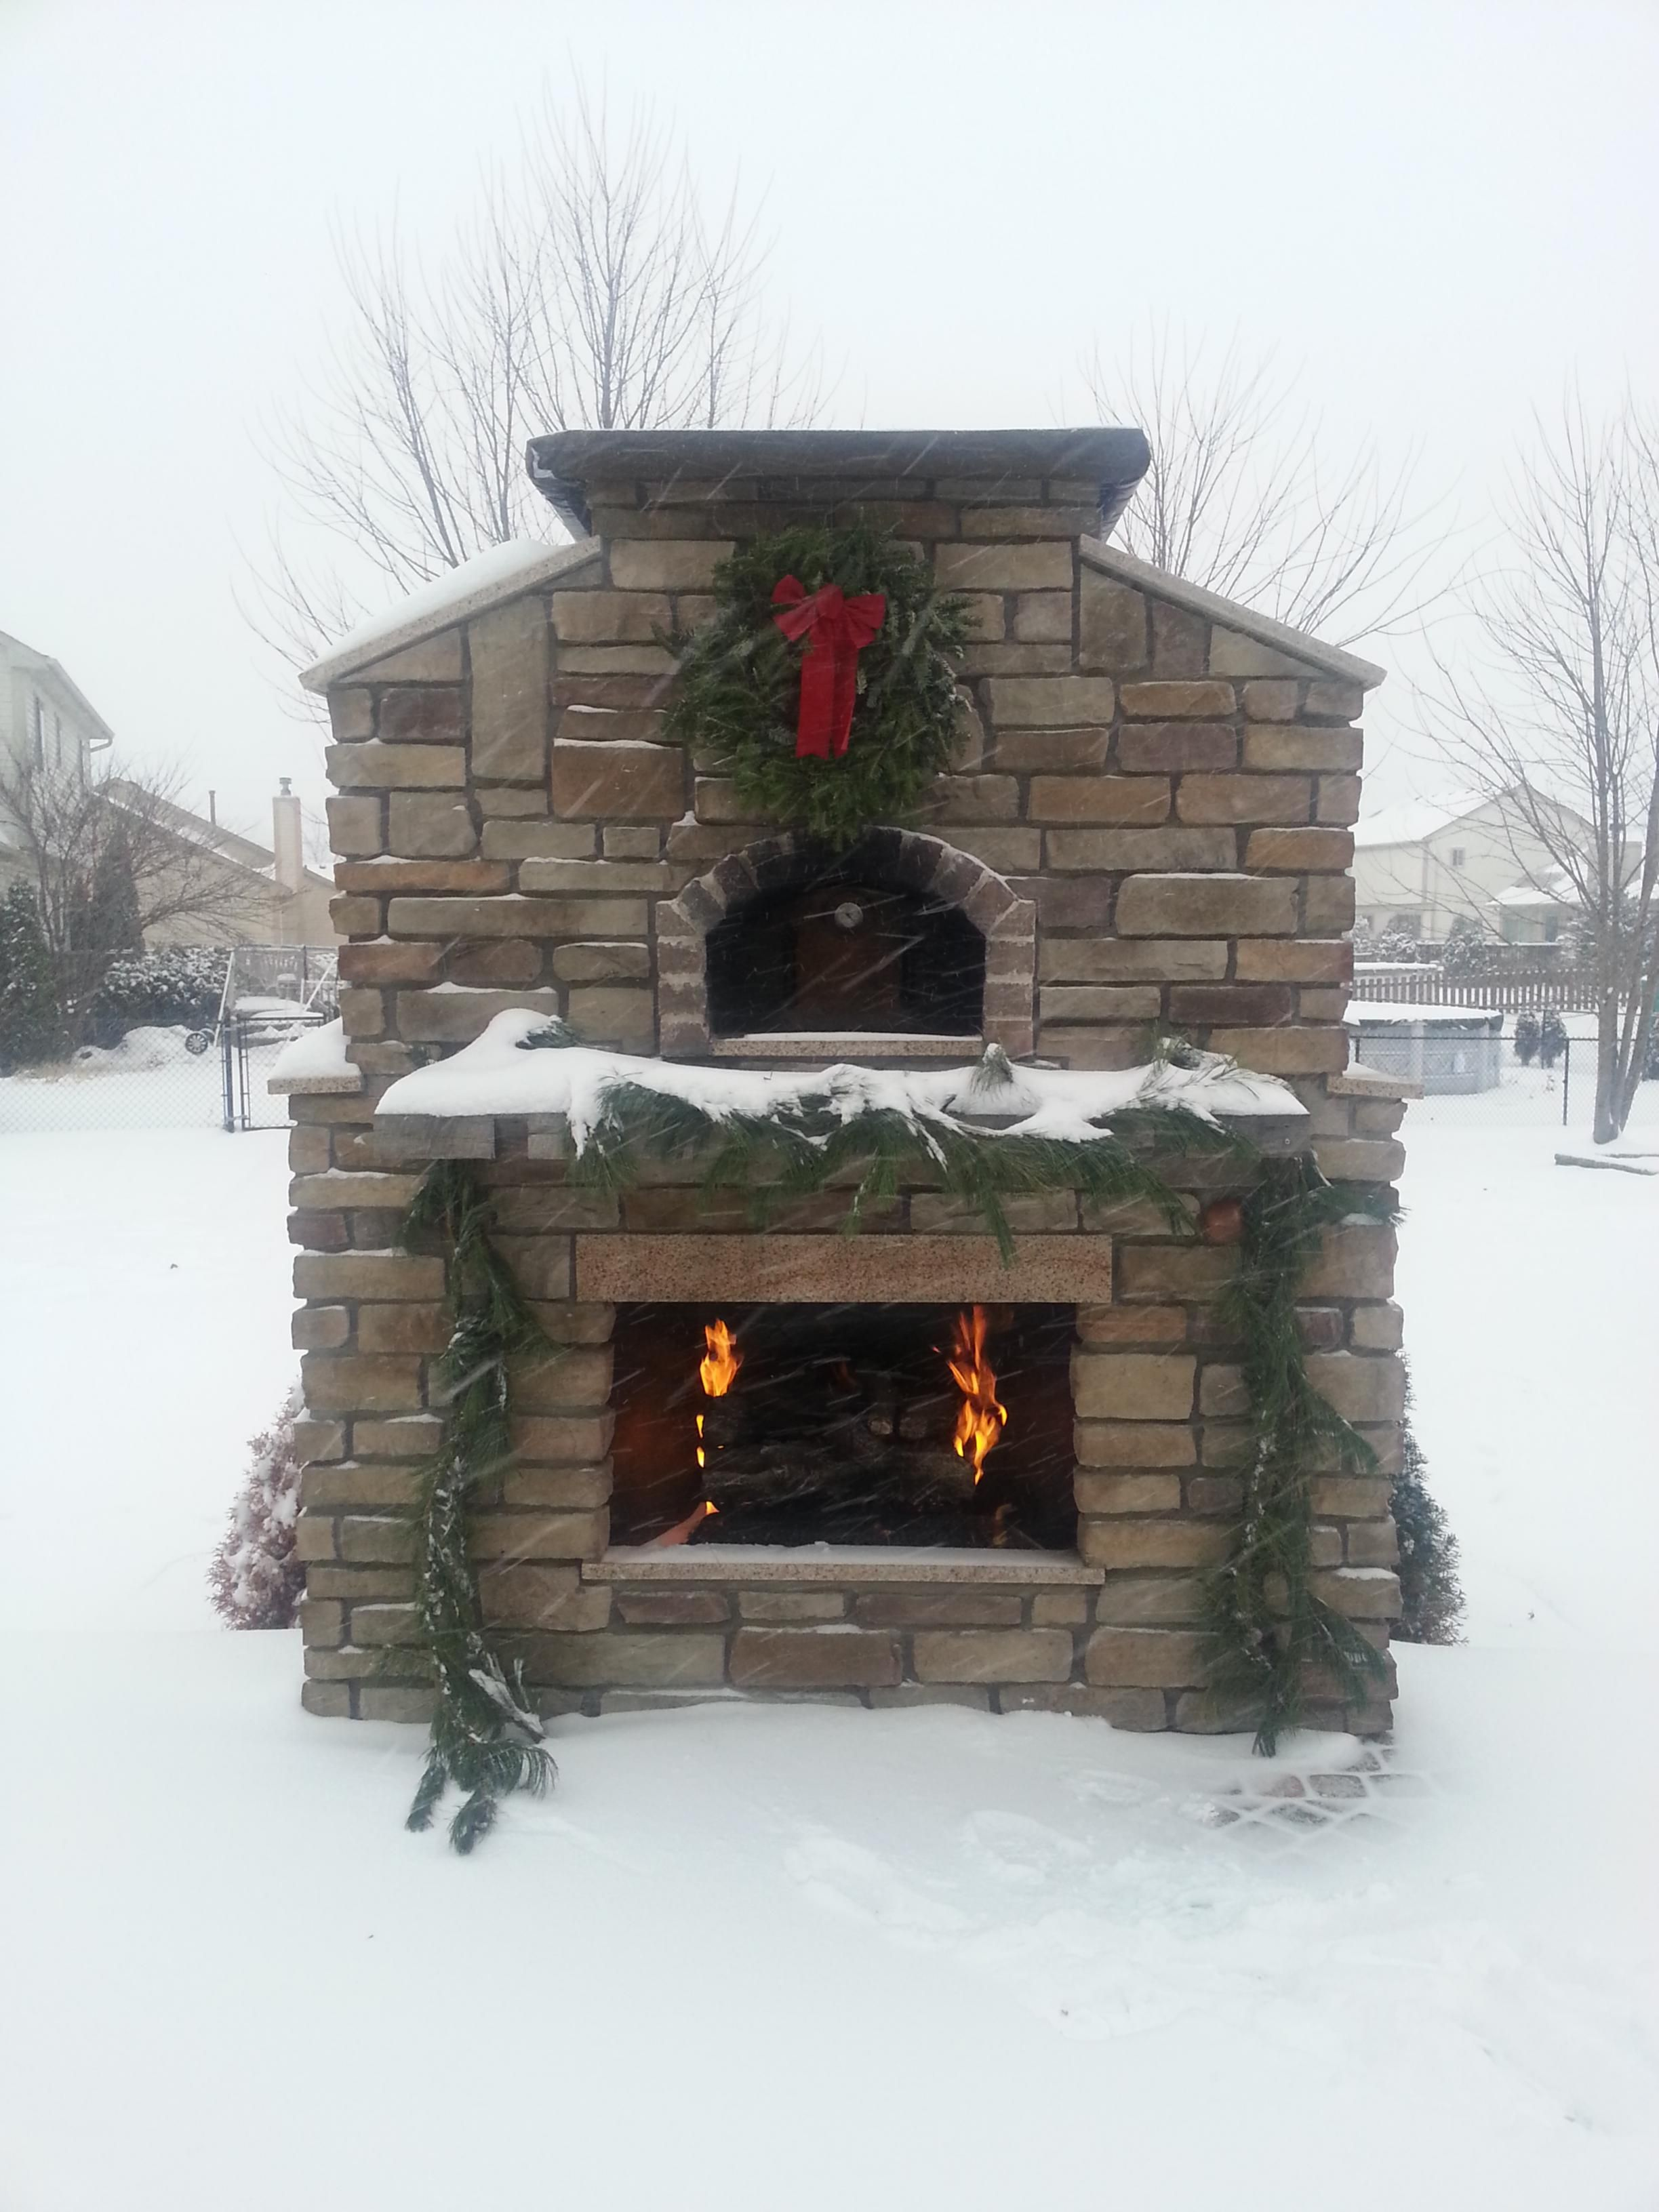 Fireplace Oven Combo Backyard Fireplace Outdoor Fireplace Pizza Oven Outdoor Fireplace